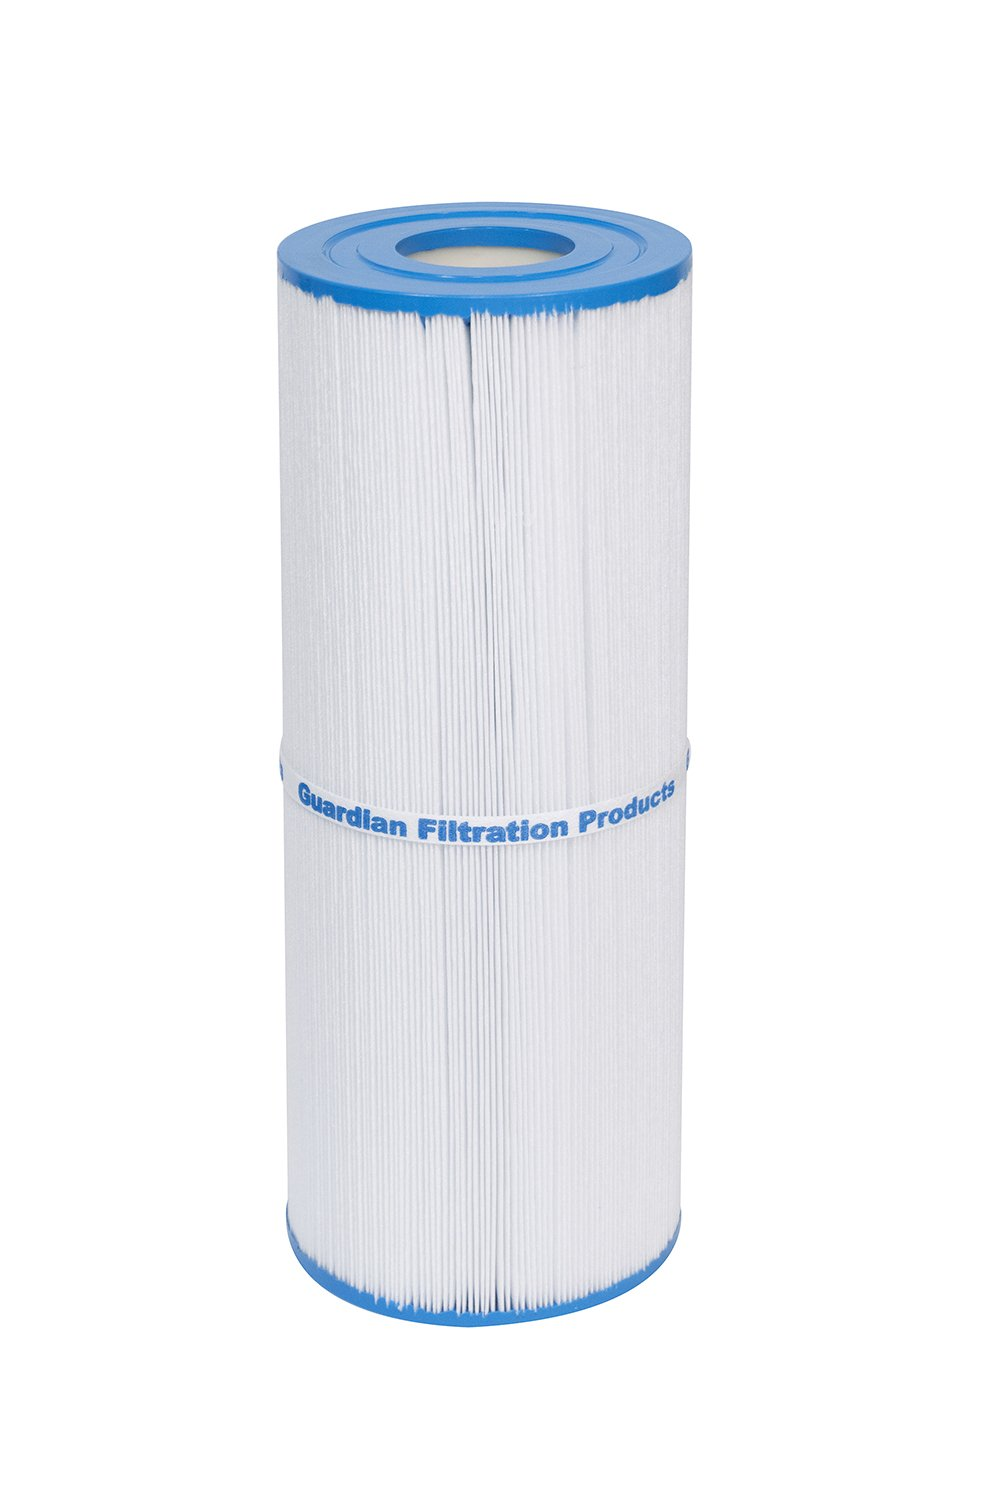 Guardian Filtration Products, Replacement Pool Spa Filter, For Unicel C-4950, Pleatco PRB50-IN, Filbur FC-2390